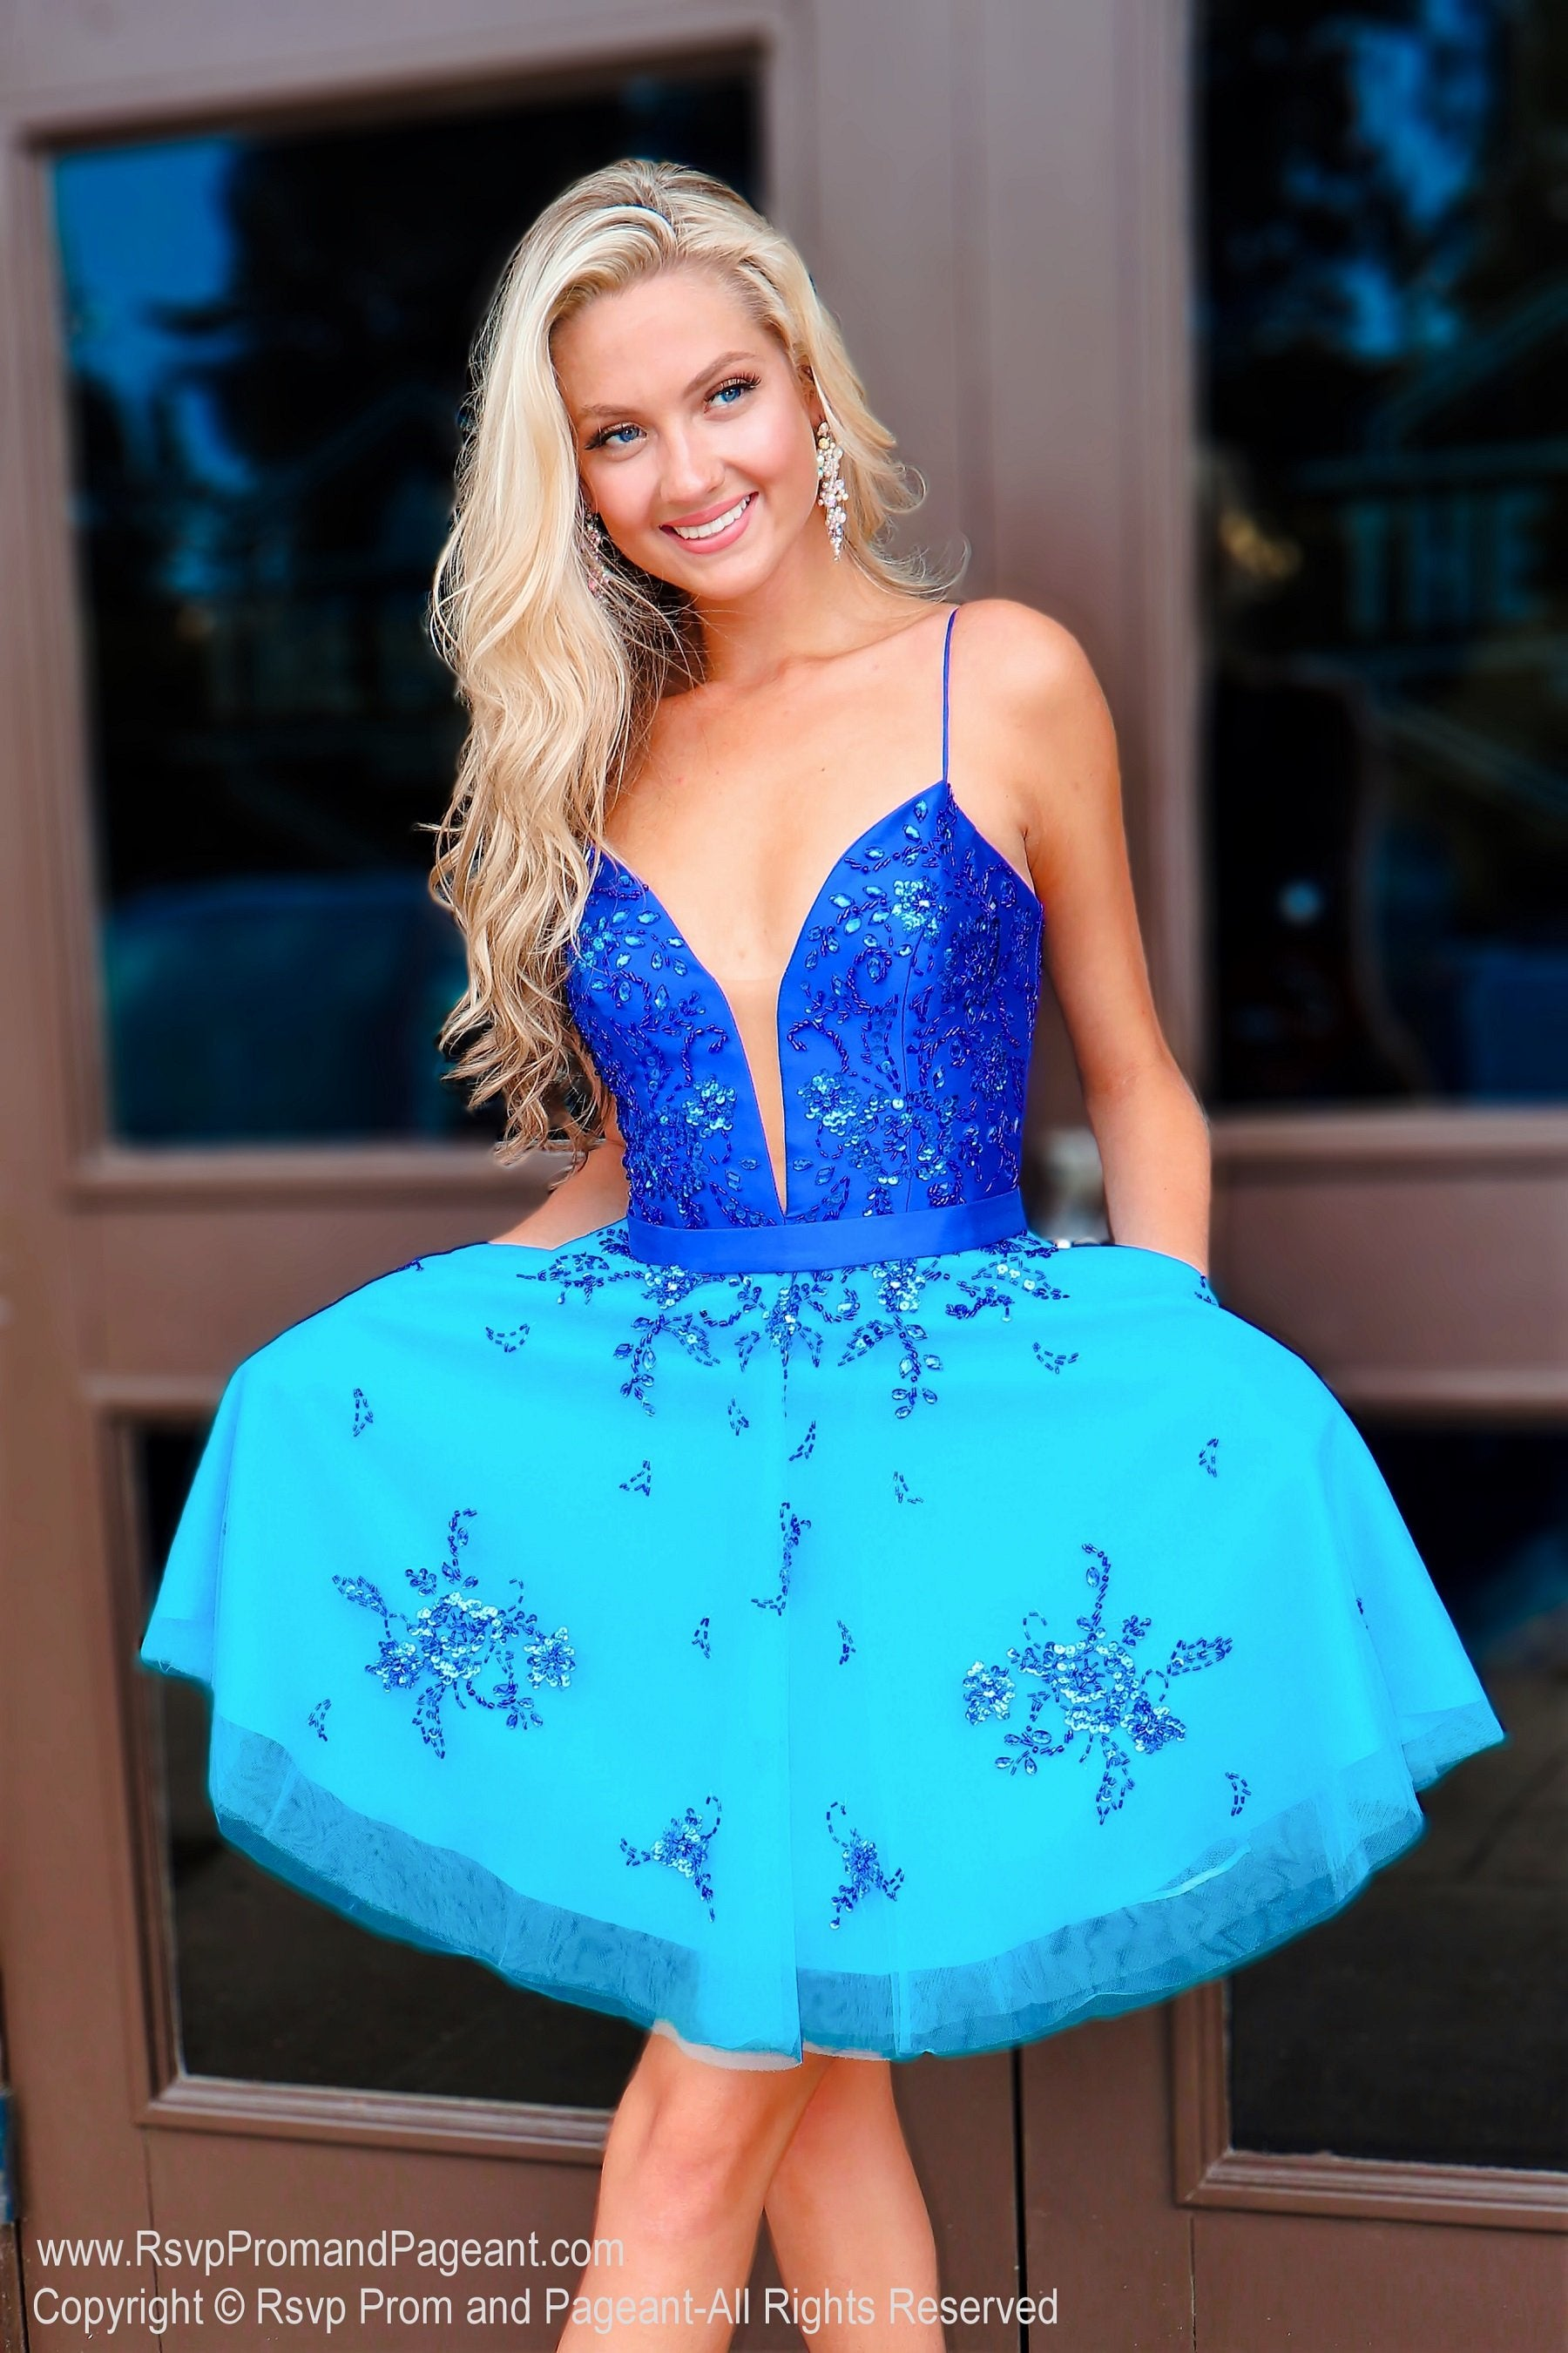 e69e5d85066 Best Place To Resell Prom Dresses - Gomes Weine AG